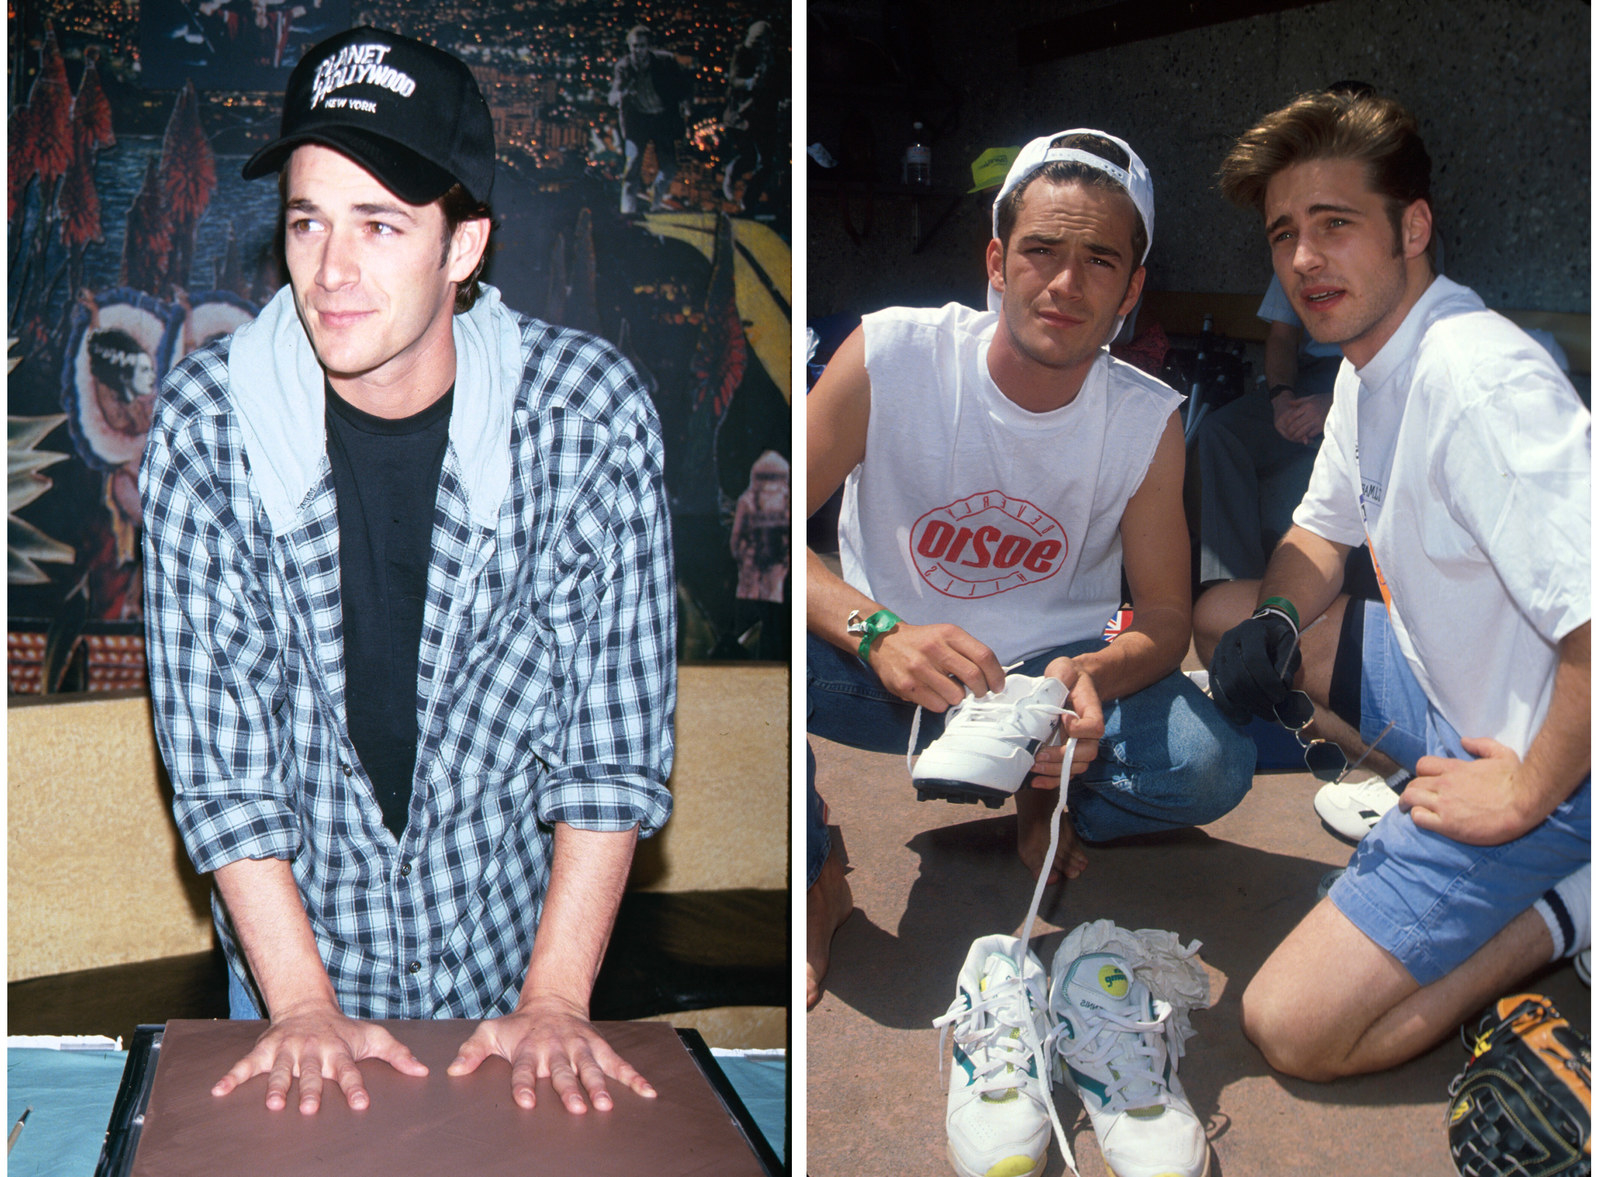 Left: Luke Perry creates an imprint of his hands during a charity event in 1990. Right: Luke Perry and Jason Priestley attend a charity baseball event in 1991.